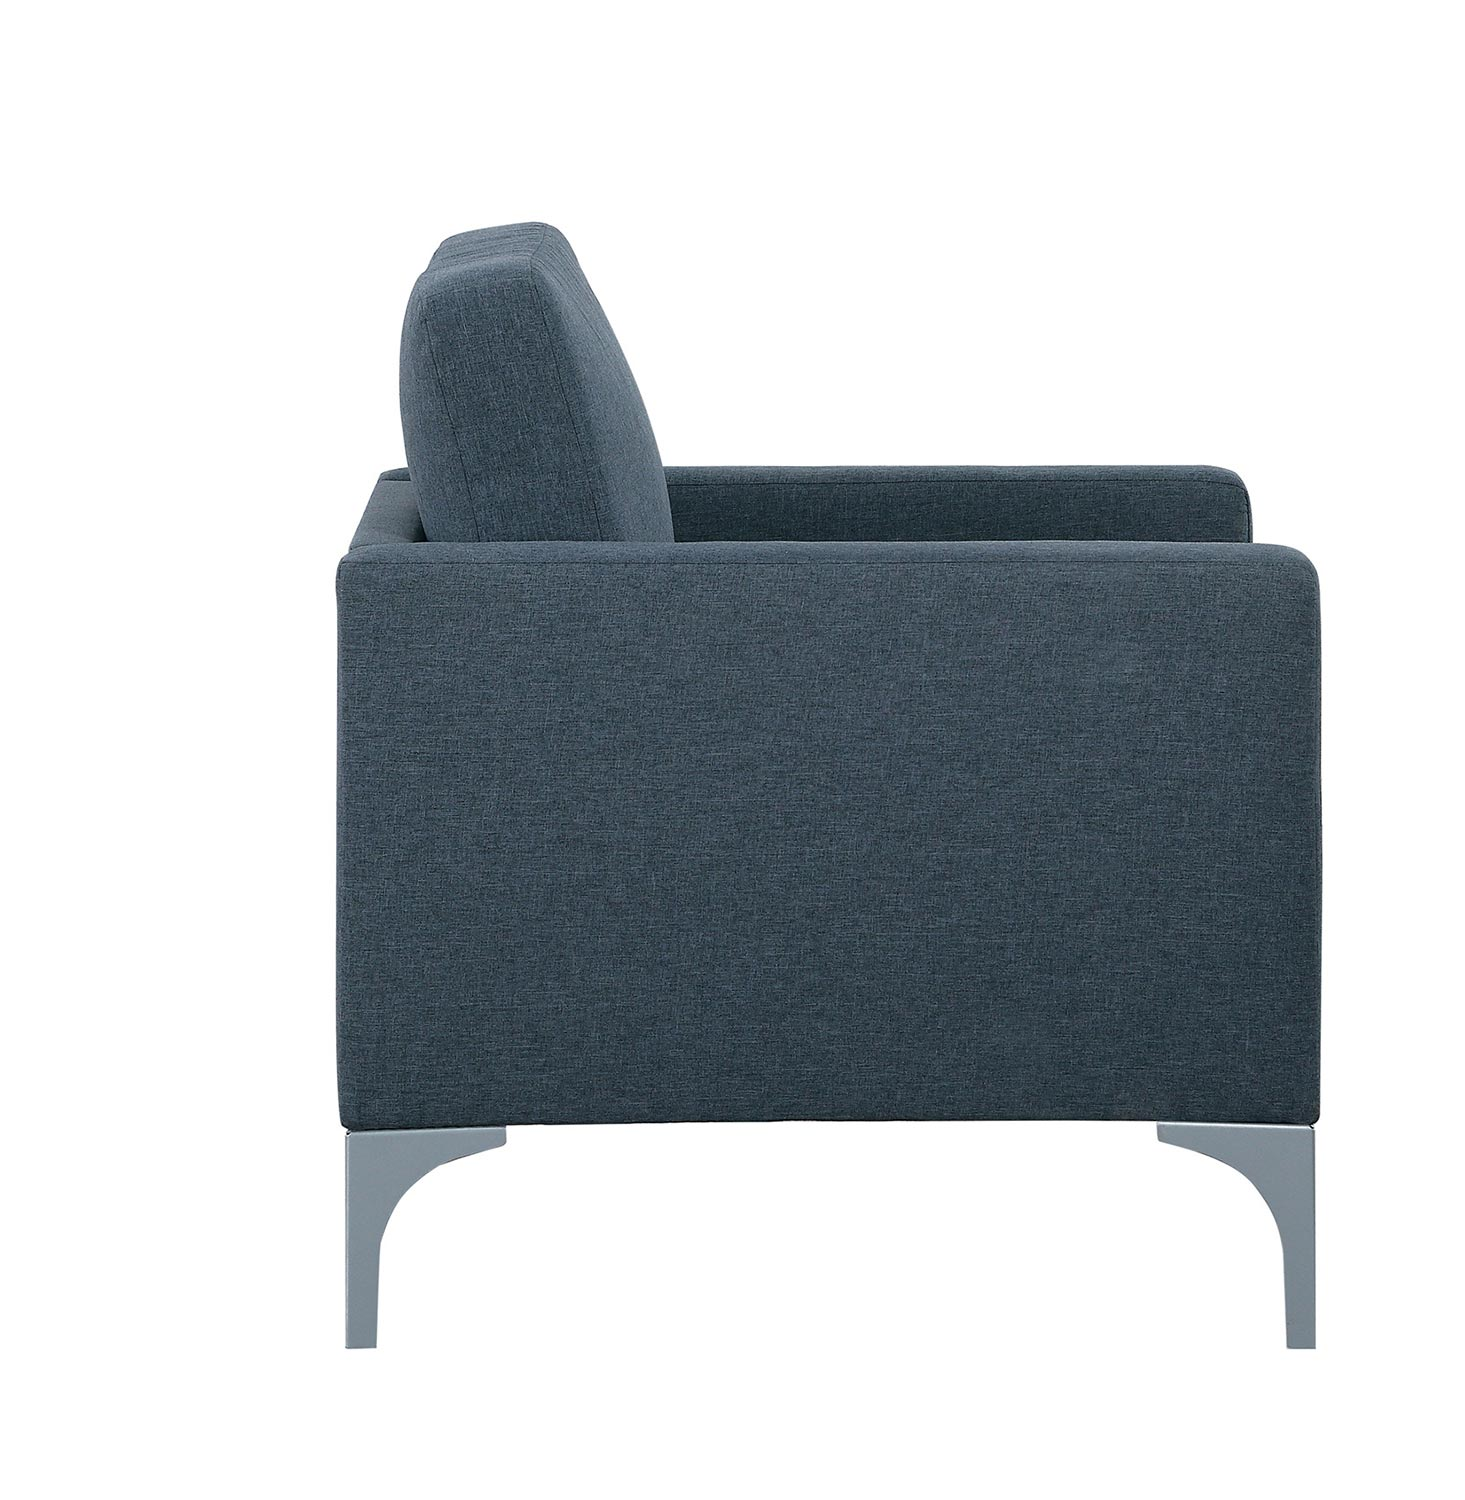 Homelegance Soho Chair - Dark Gray - Brownish Gray